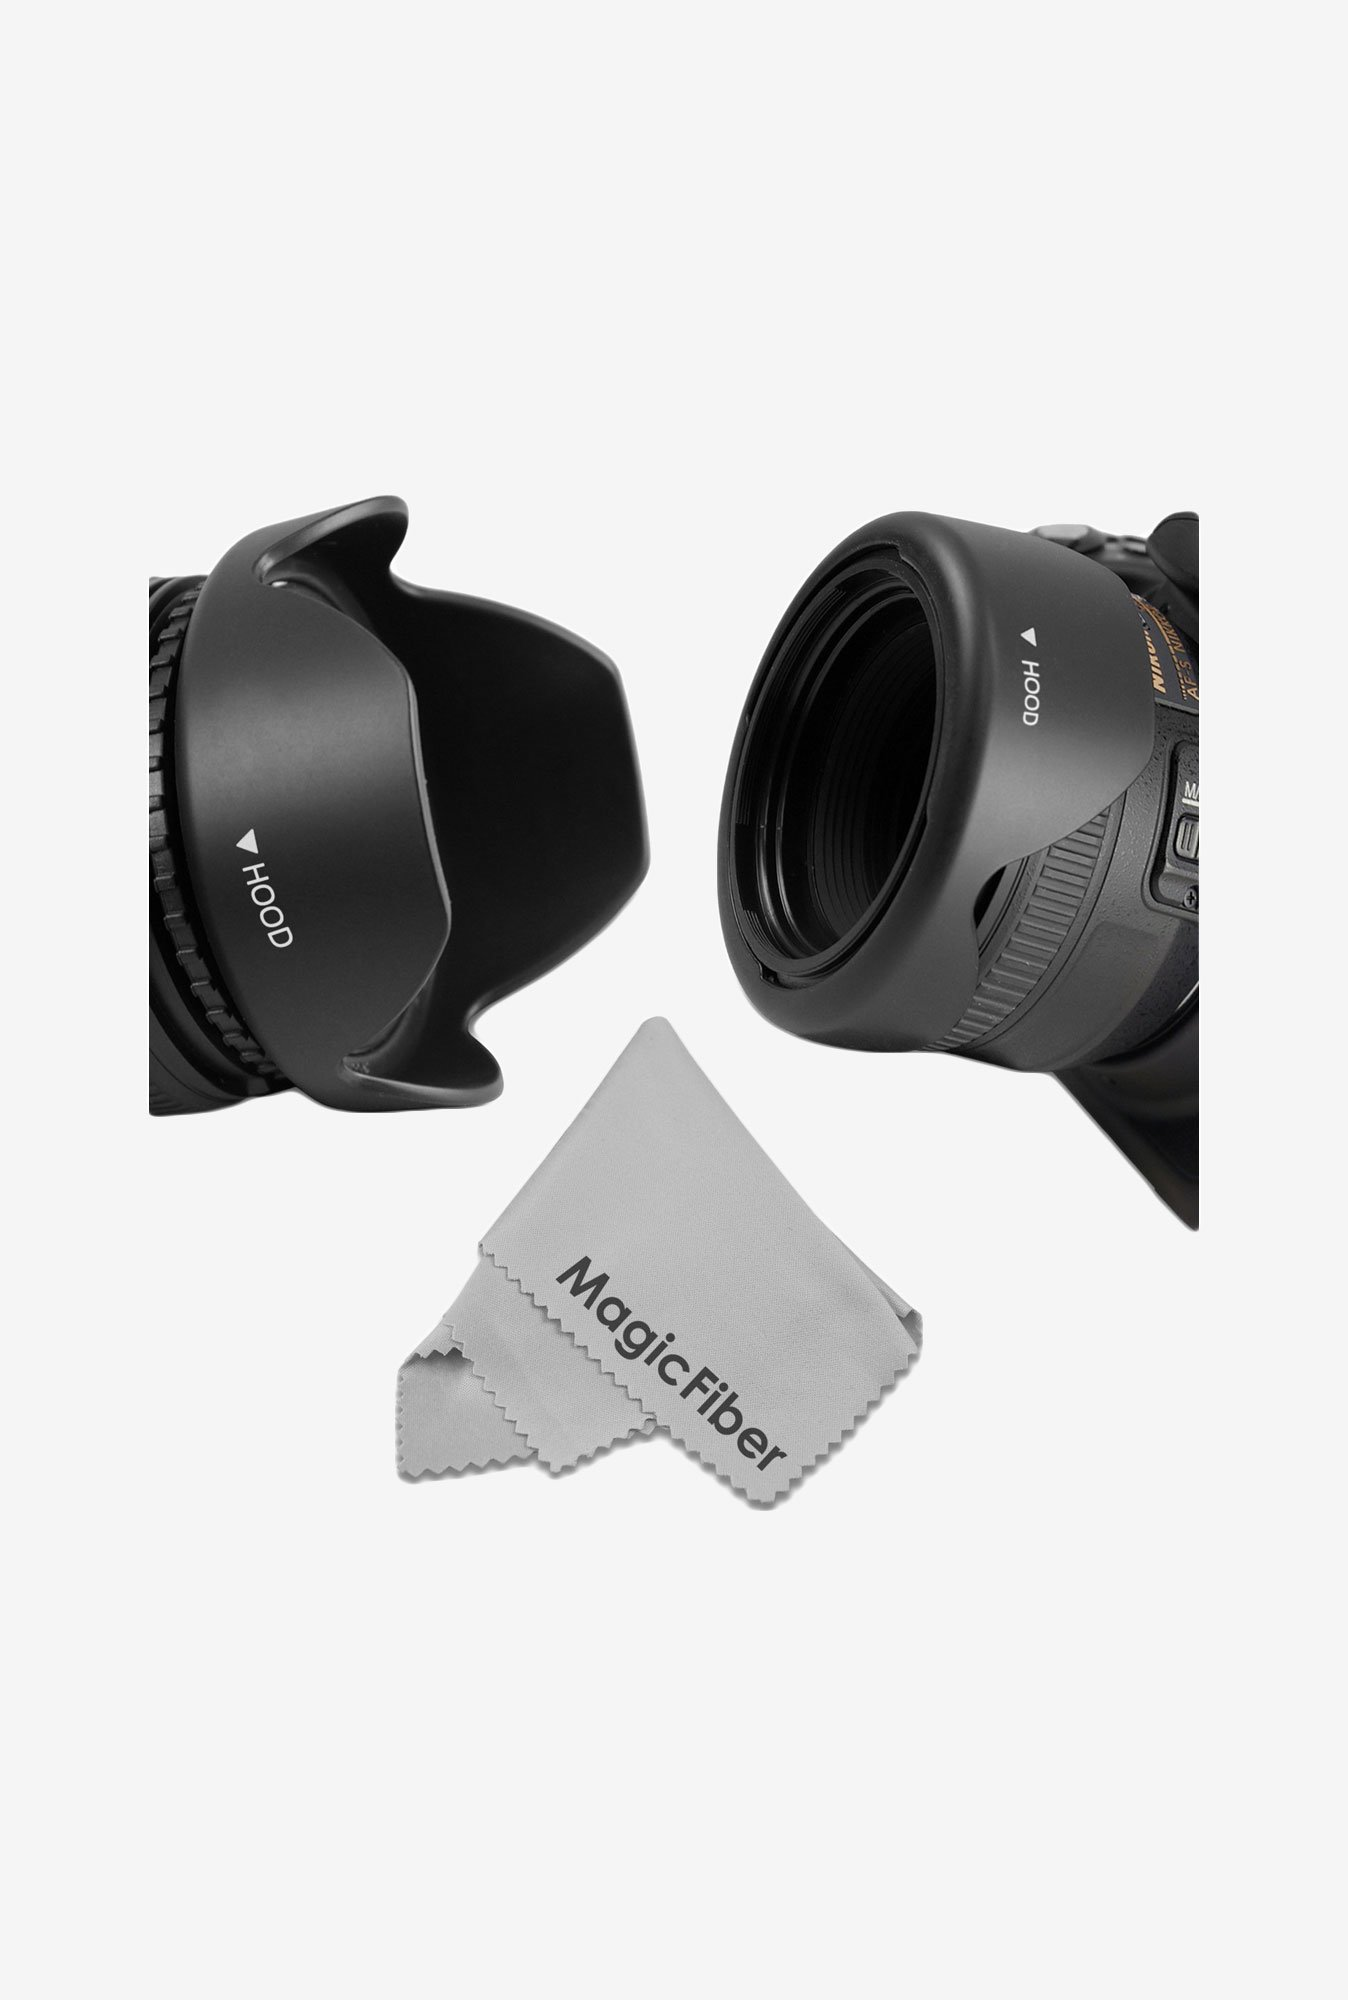 Goja 77mm Reversible Flower Lens Hood For Canon